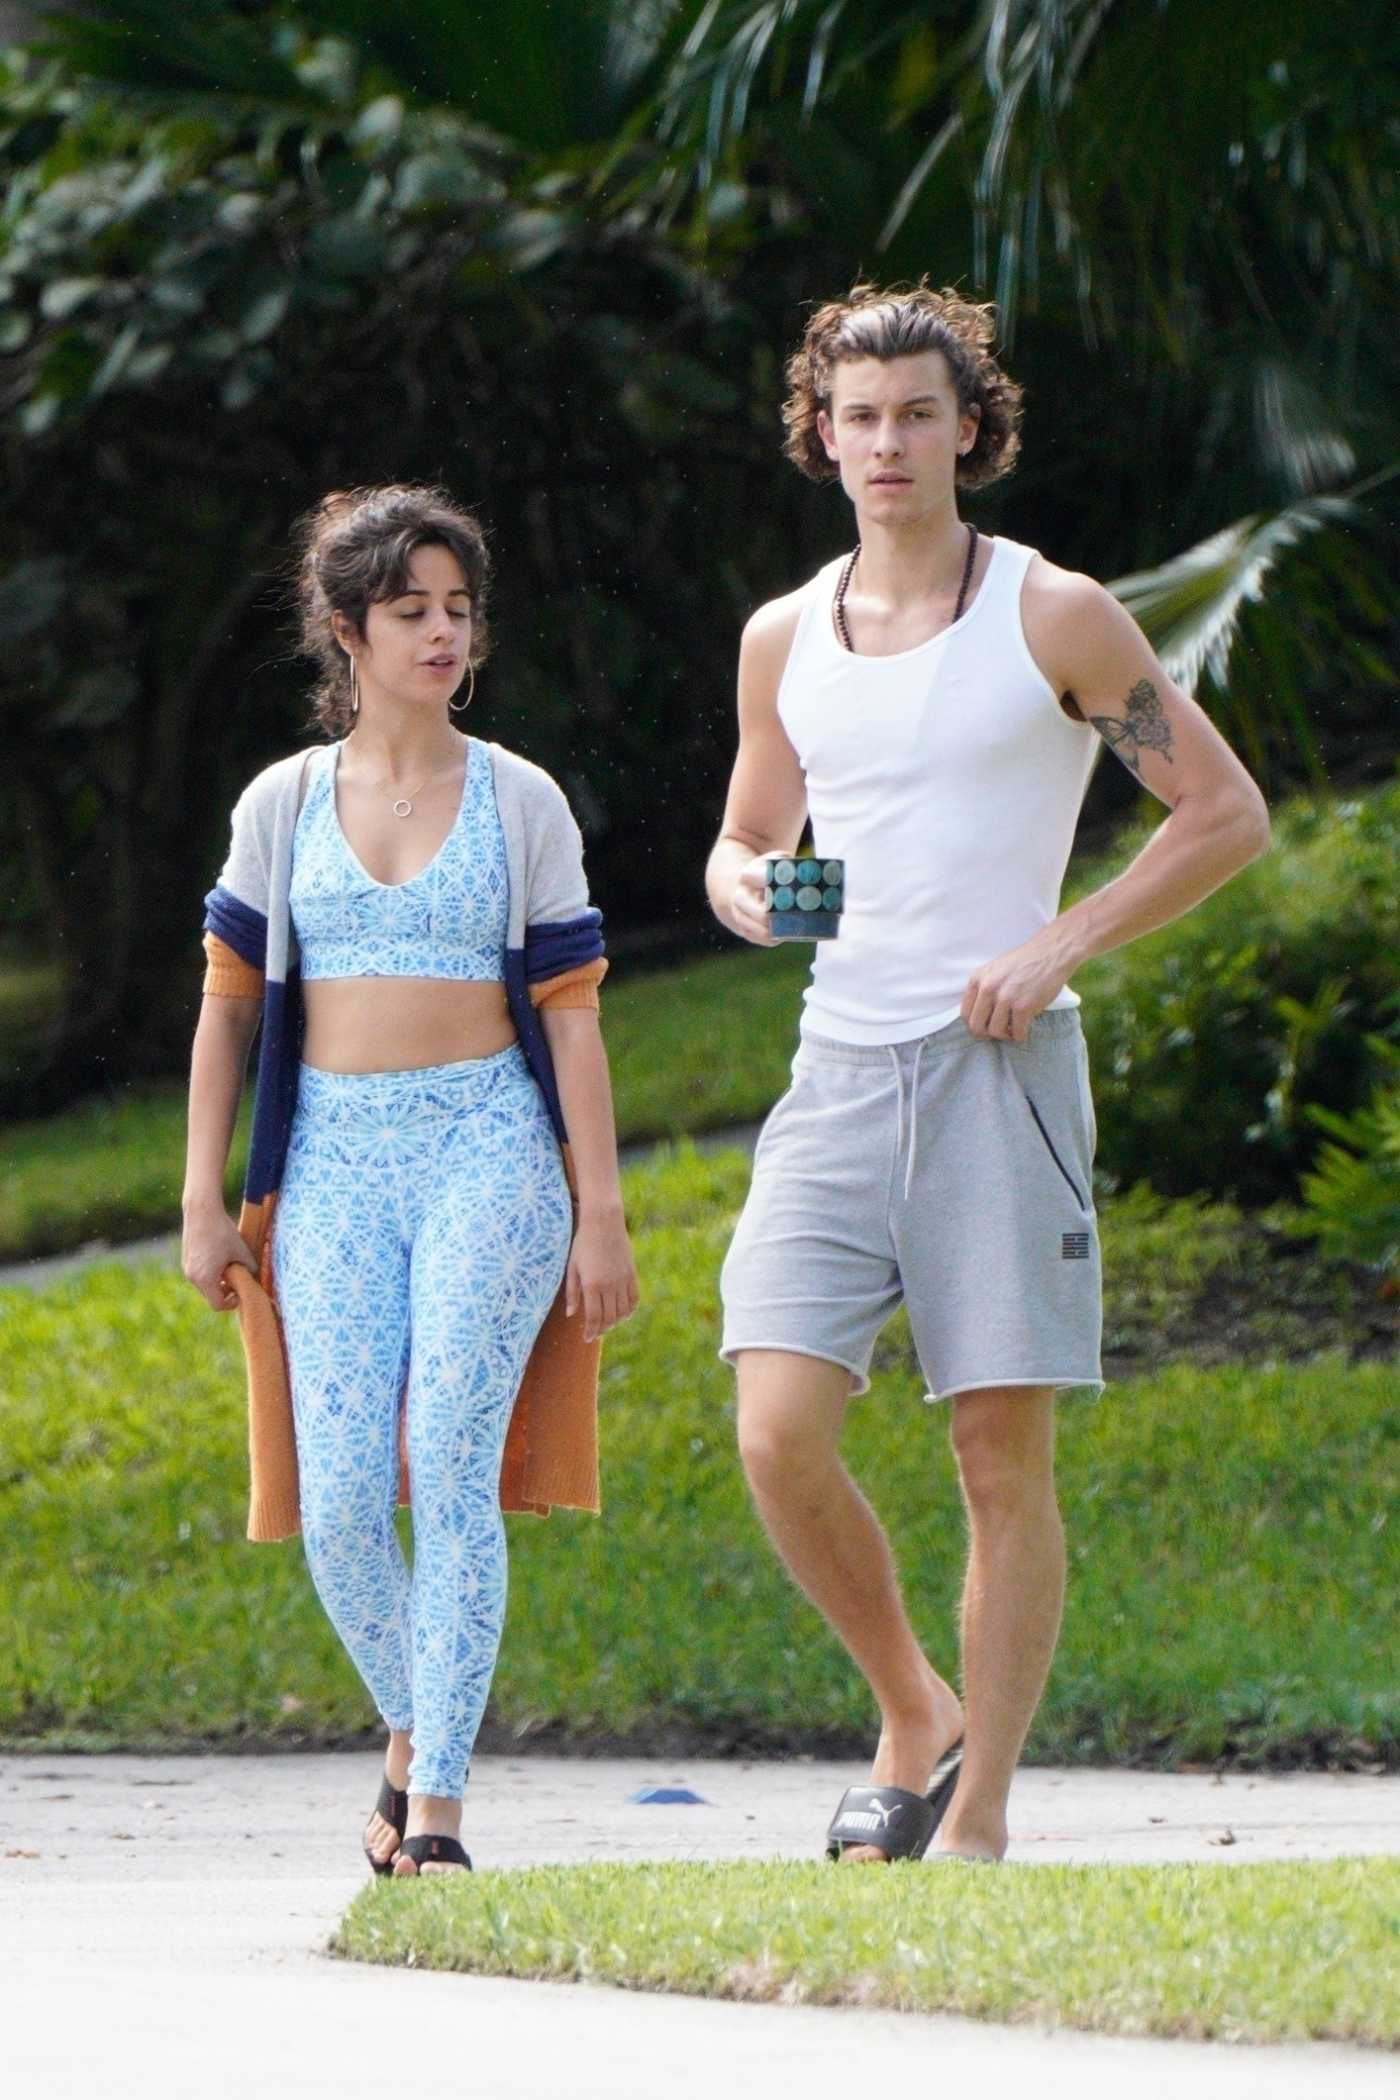 Camila Cabello in a Light Blue Workout Ensemble Was Seen Out with Shawn Mendes in Miami 11/15/2020